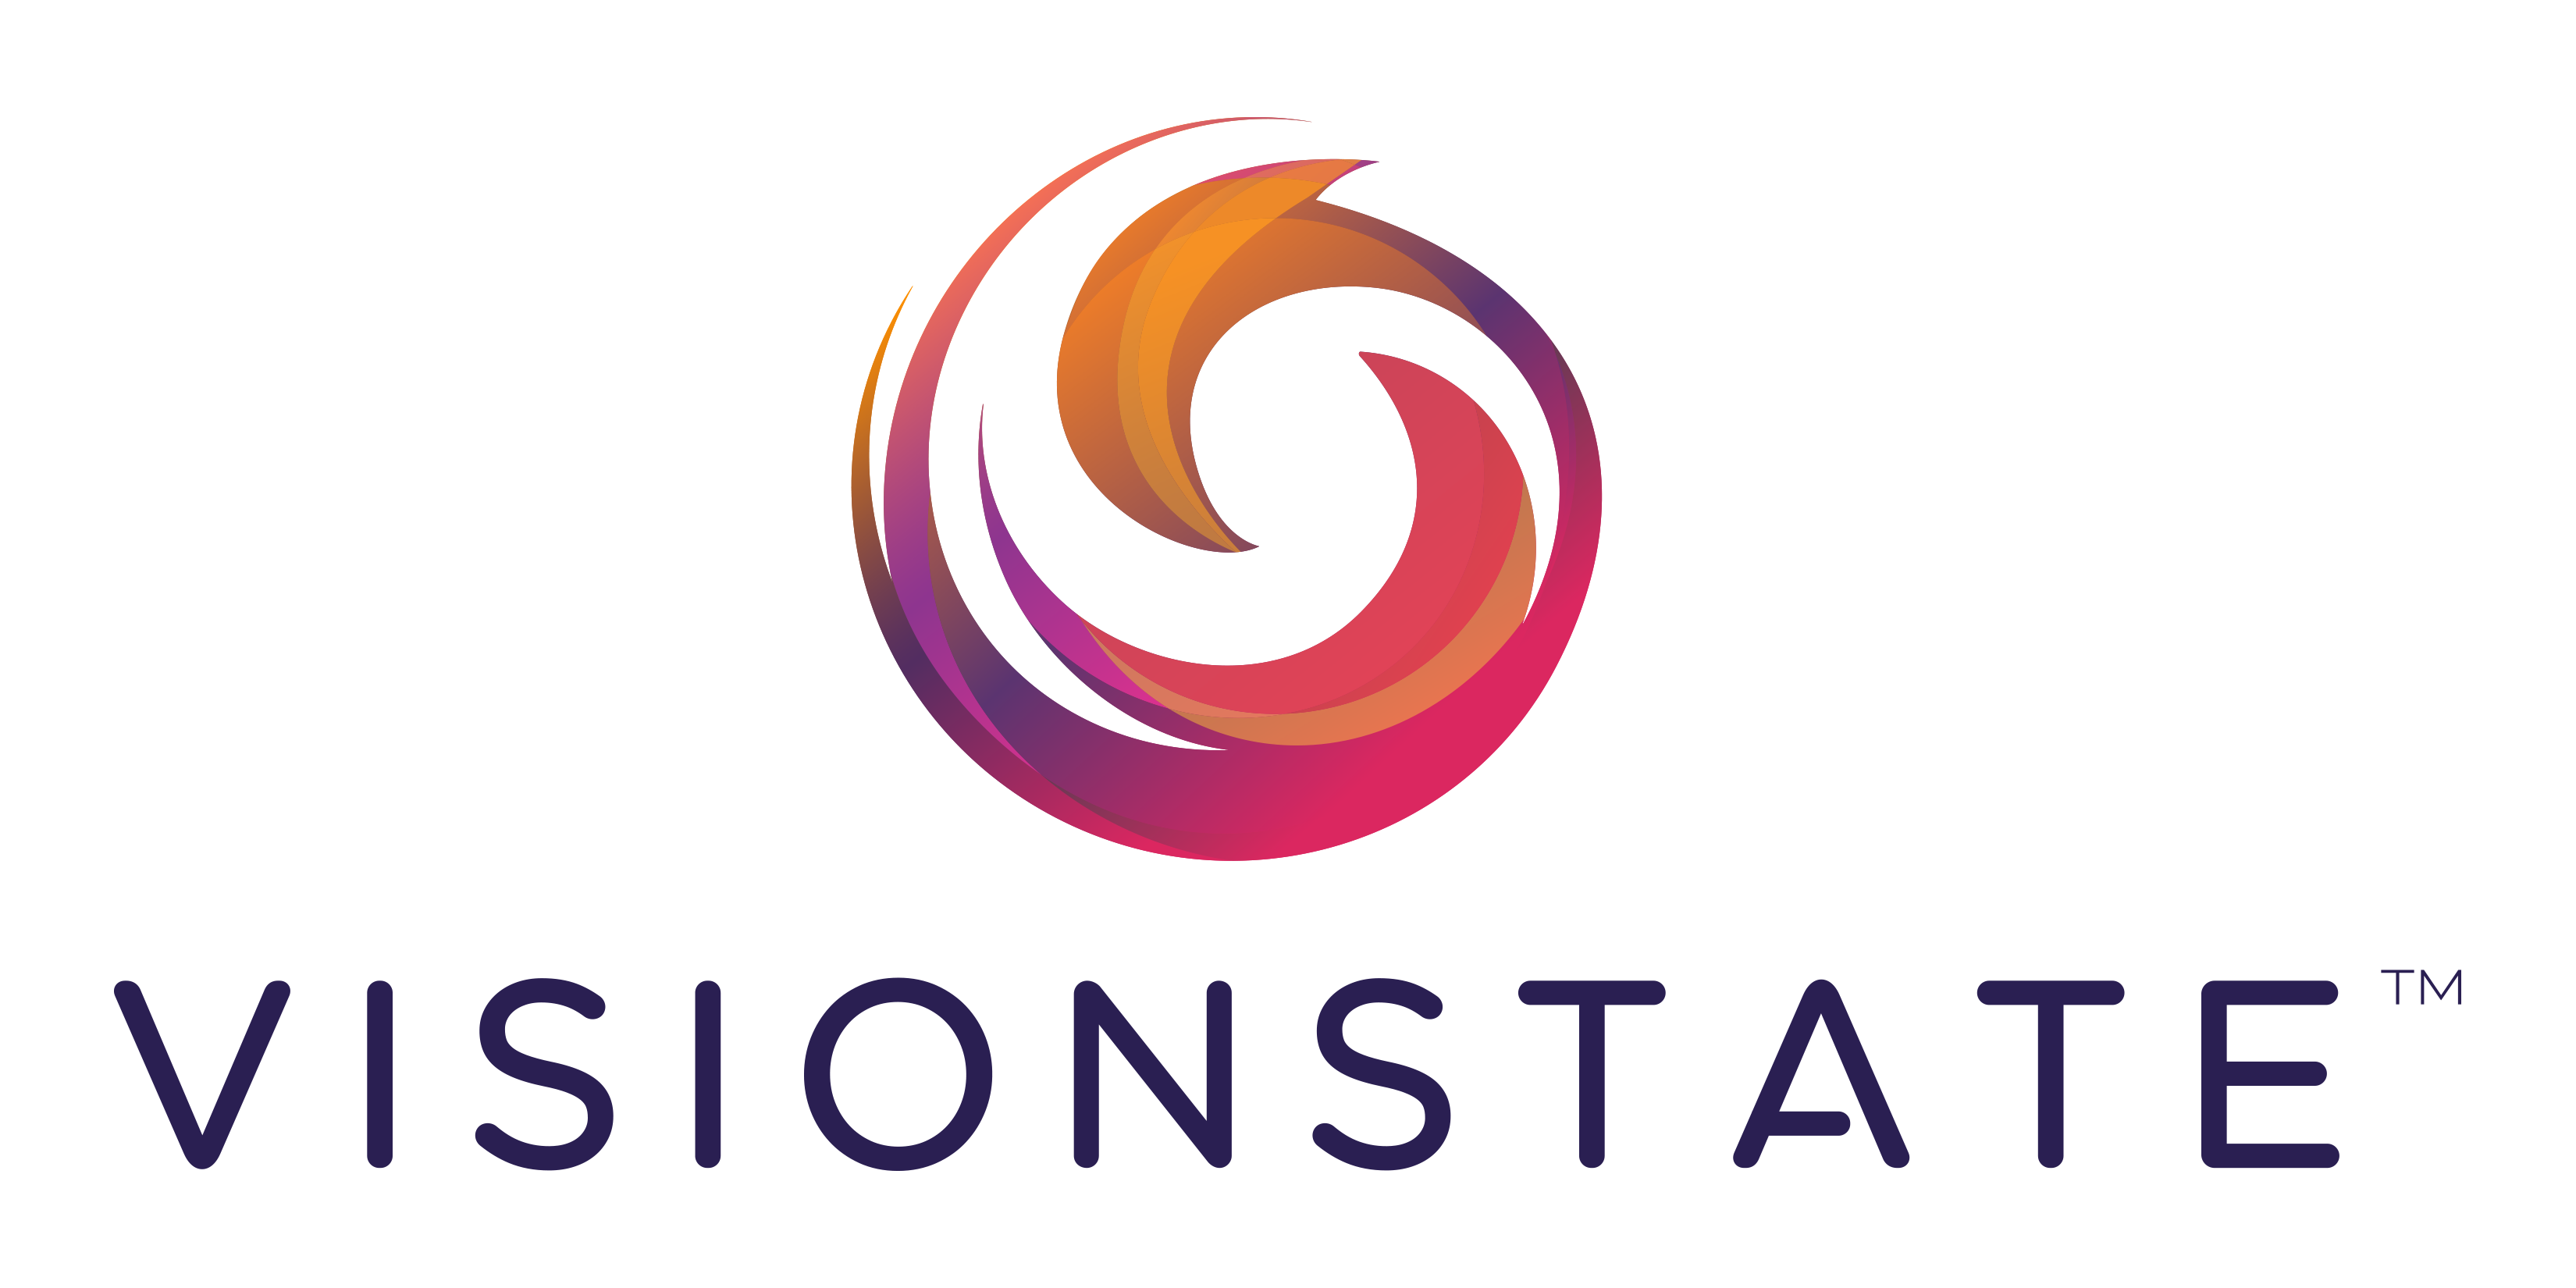 Visionstate Appoints New Director as Part of its Accelerated Growth Strategy